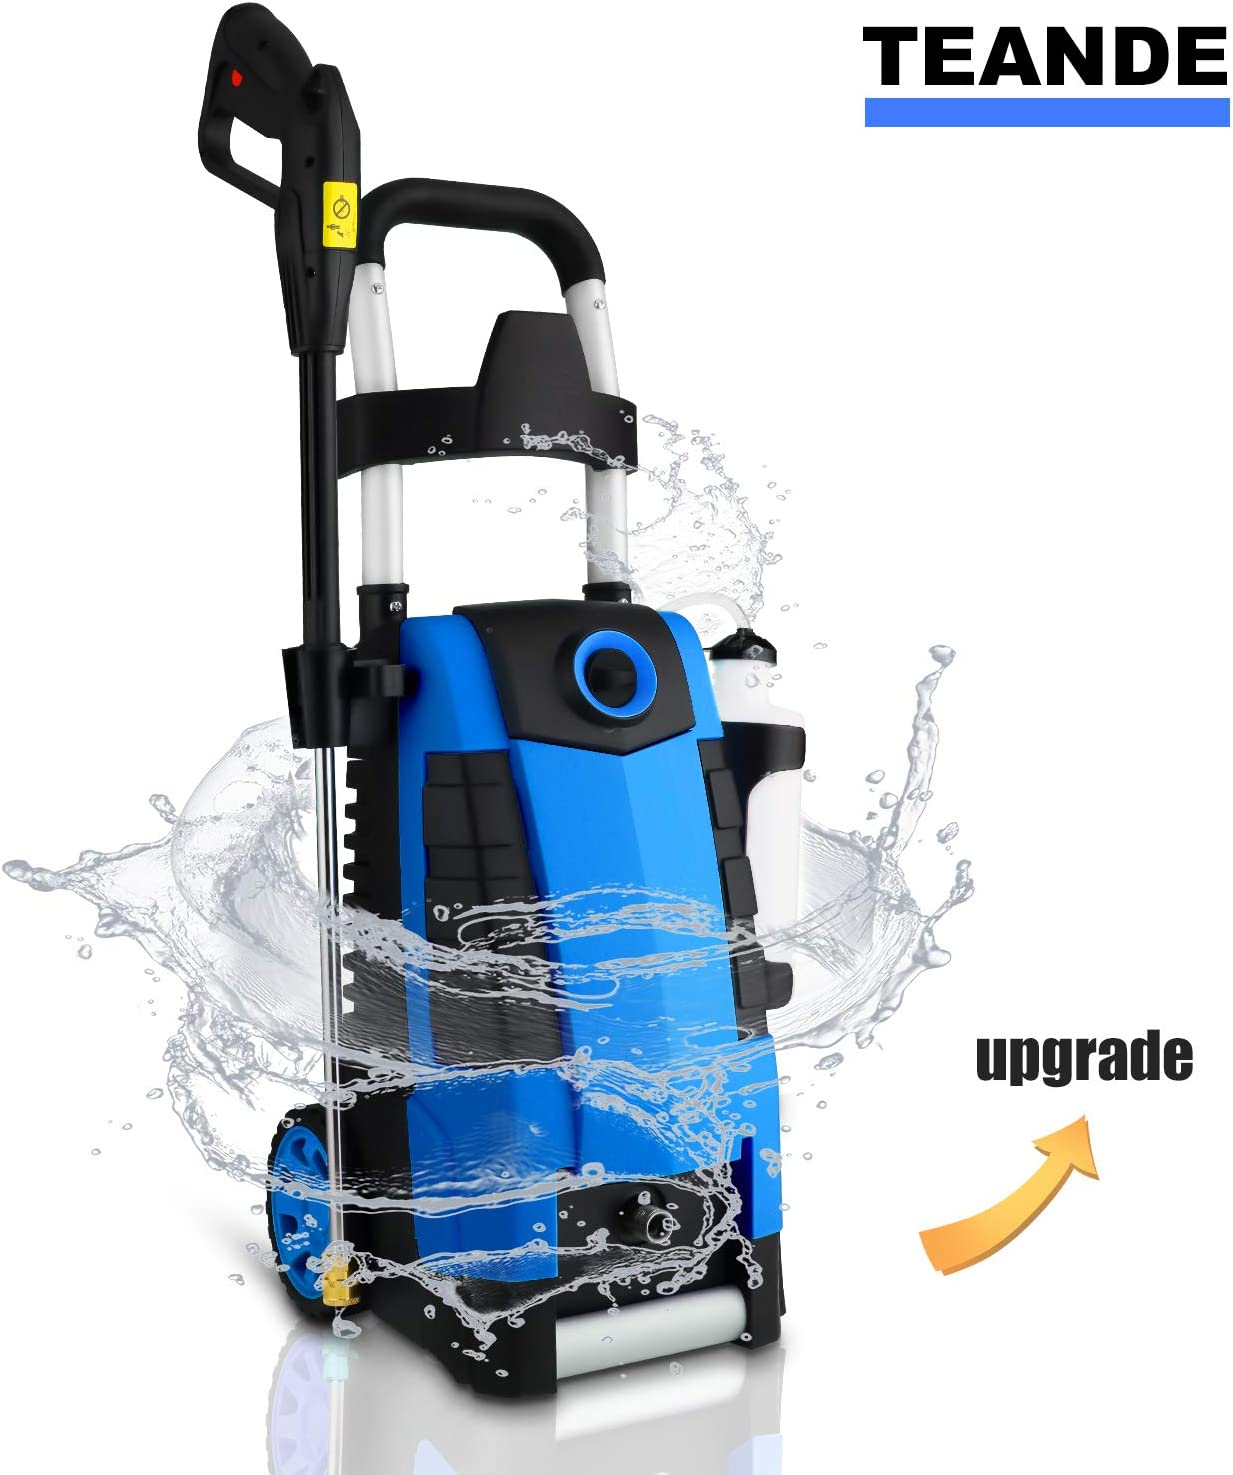 MAX 2.8GPM Electric Power Washer 1800W High Pressure Washer MR3800 TEANDE 3800PSI Electric Pressure Washer Blue